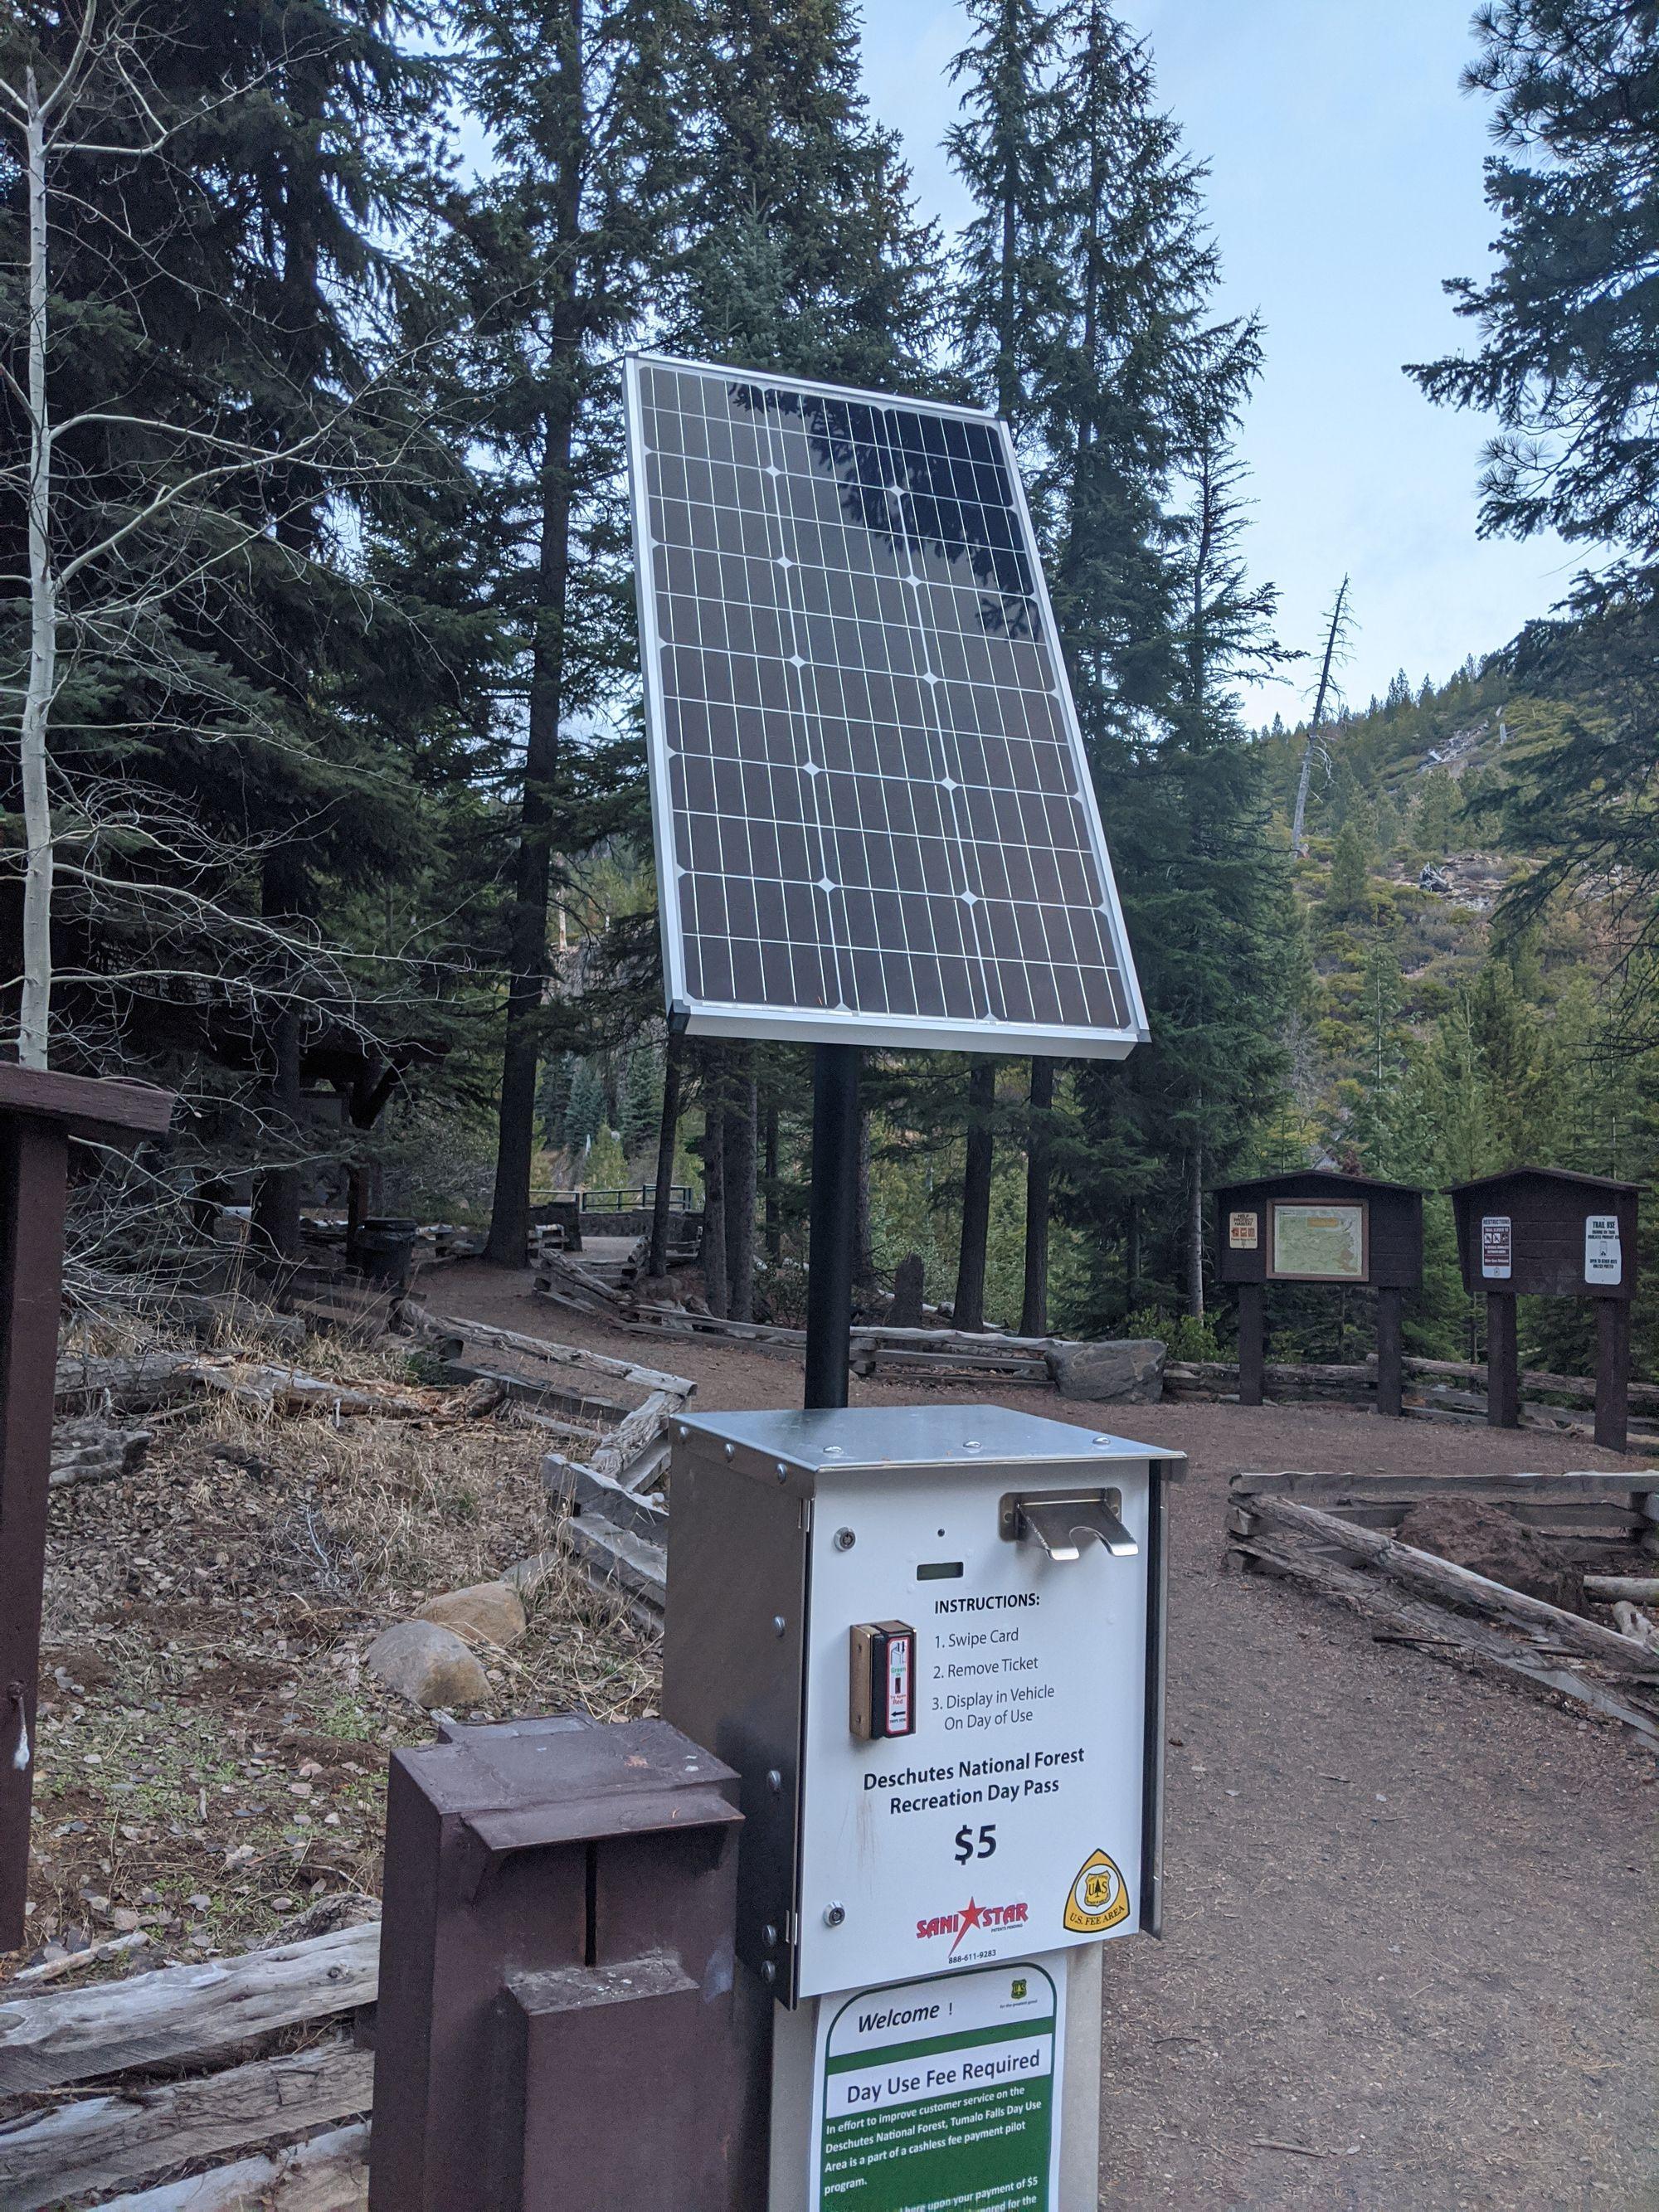 A Zamp Solar Panel Keeping The Sanistar Convenient Trail Head Pay Station Charged Up No More Searching For Something To Write Wit Solar Solar Power Solar Kit